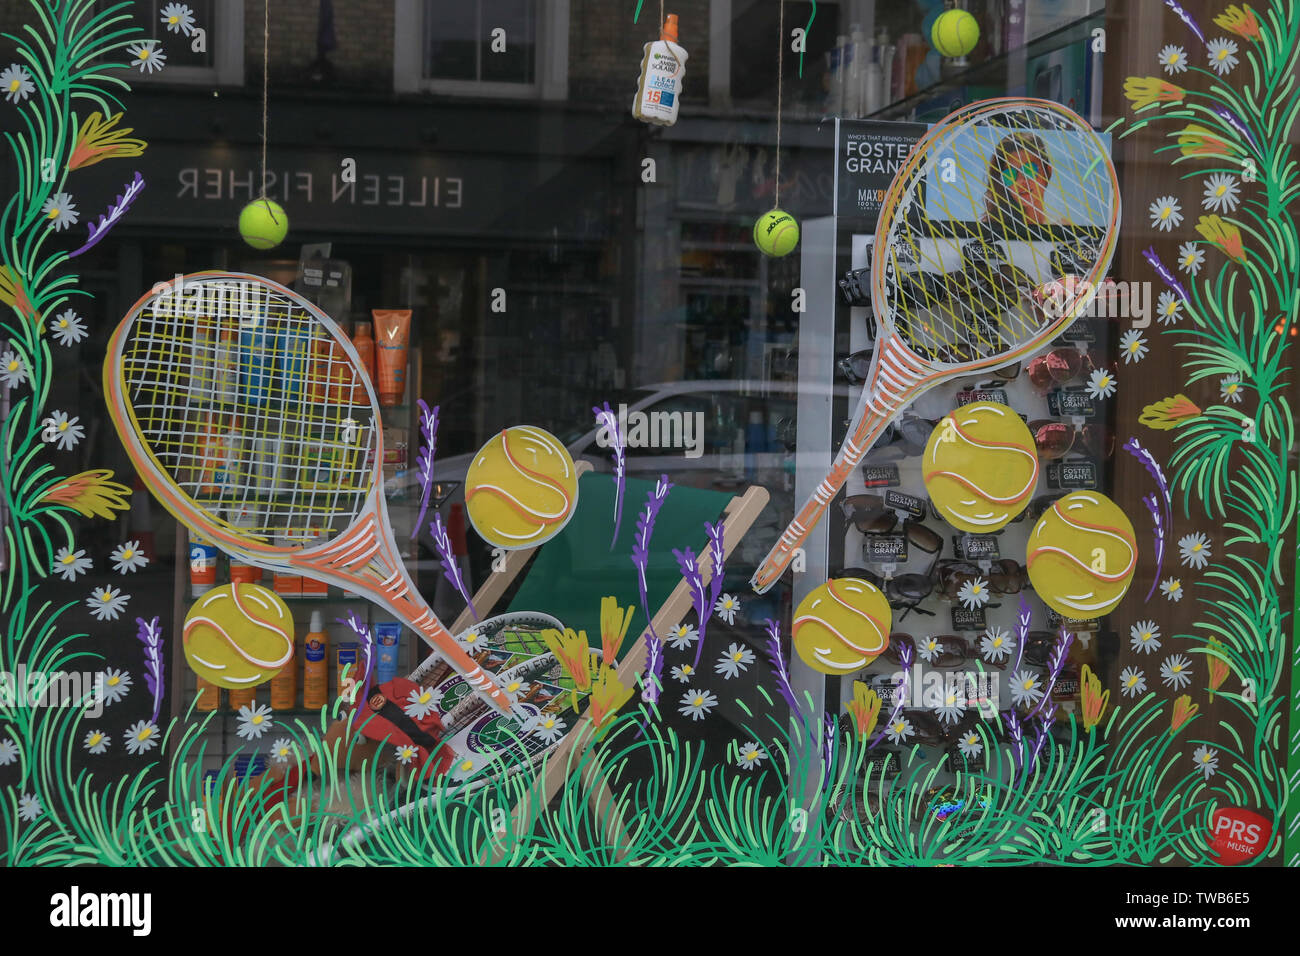 A shop front in Wimbledon High Street   is being decorated with tennis themes as Wimbledon prepares to host the 2019 Wimbledon Tennis Championships. Stock Photo